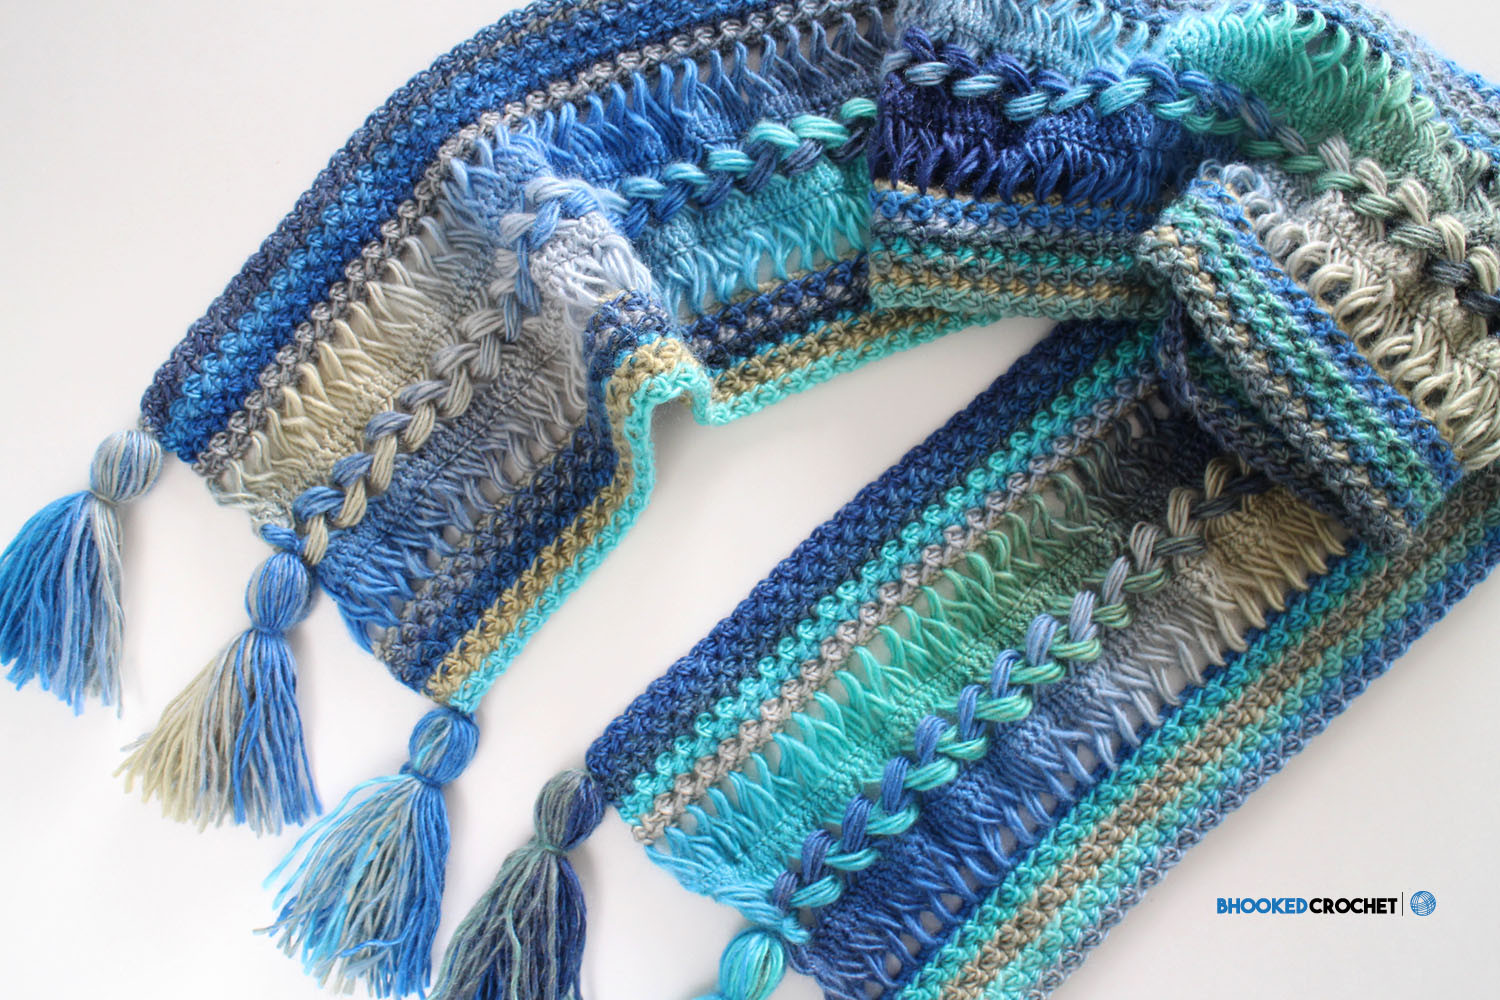 Wave Crochet Pattern Free Beautiful Waves Hairpin Lace Scarf B Hooked Crochet Of Perfect 43 Pics Wave Crochet Pattern Free